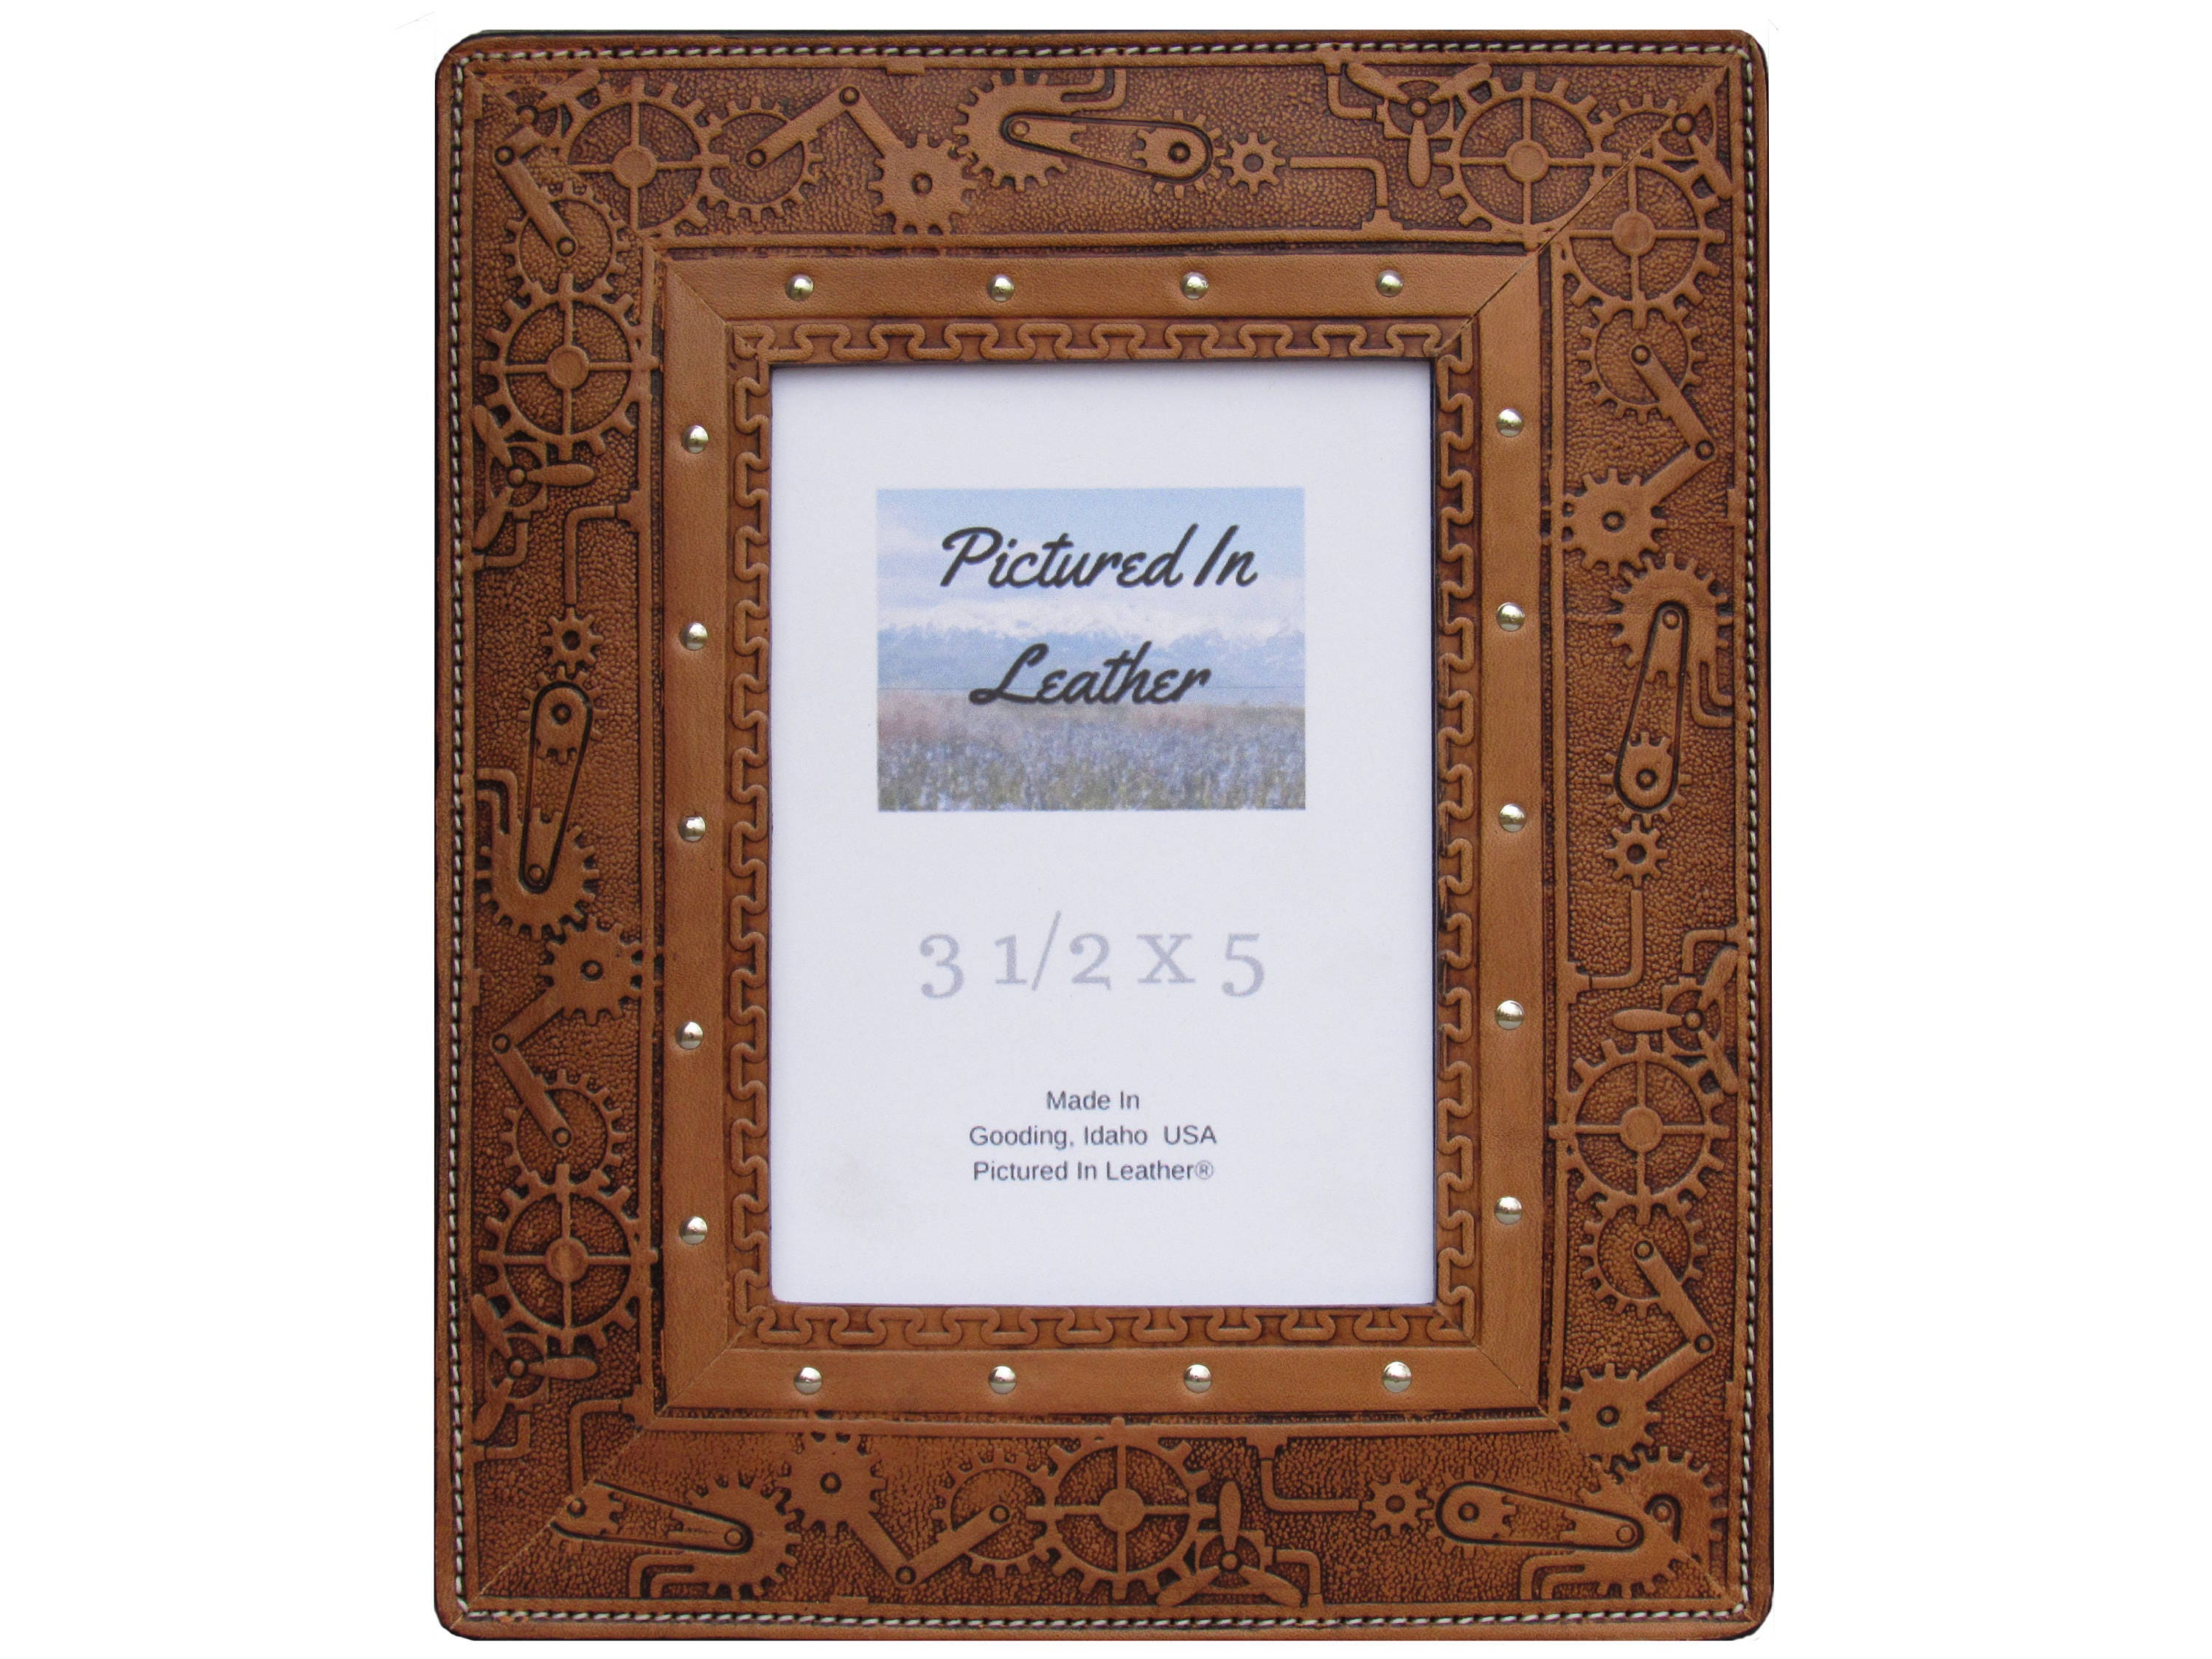 Leather photo frame, 3-1/2x5, light brown, embossed steampunk design ...